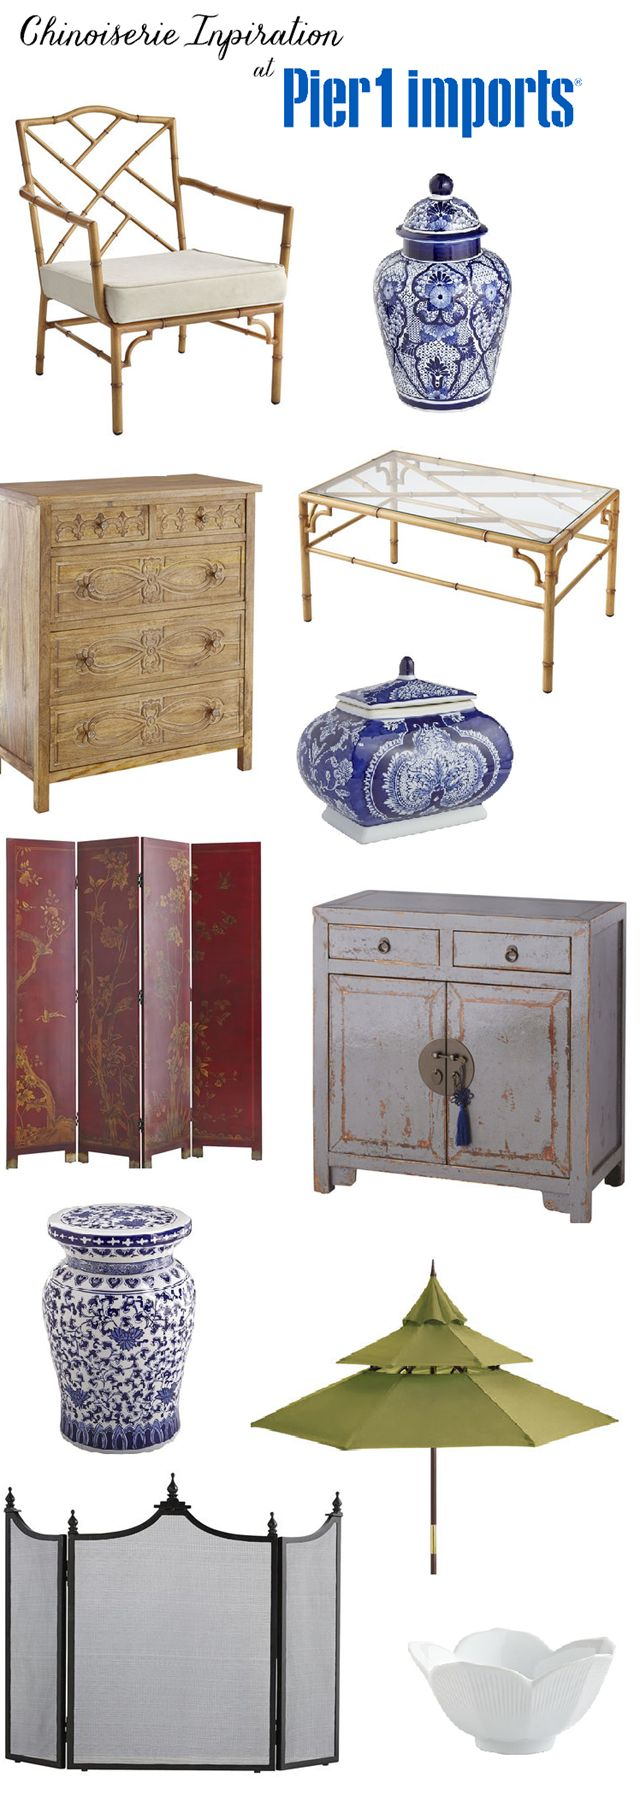 "When did @pier1imports become so ""chinoiserie chic""? (Blue and white ginger jars, faux bamboo chair, coffee table, carved chest, Asian screen, red screen room divider, pagoda patio umbrella, etc.)"